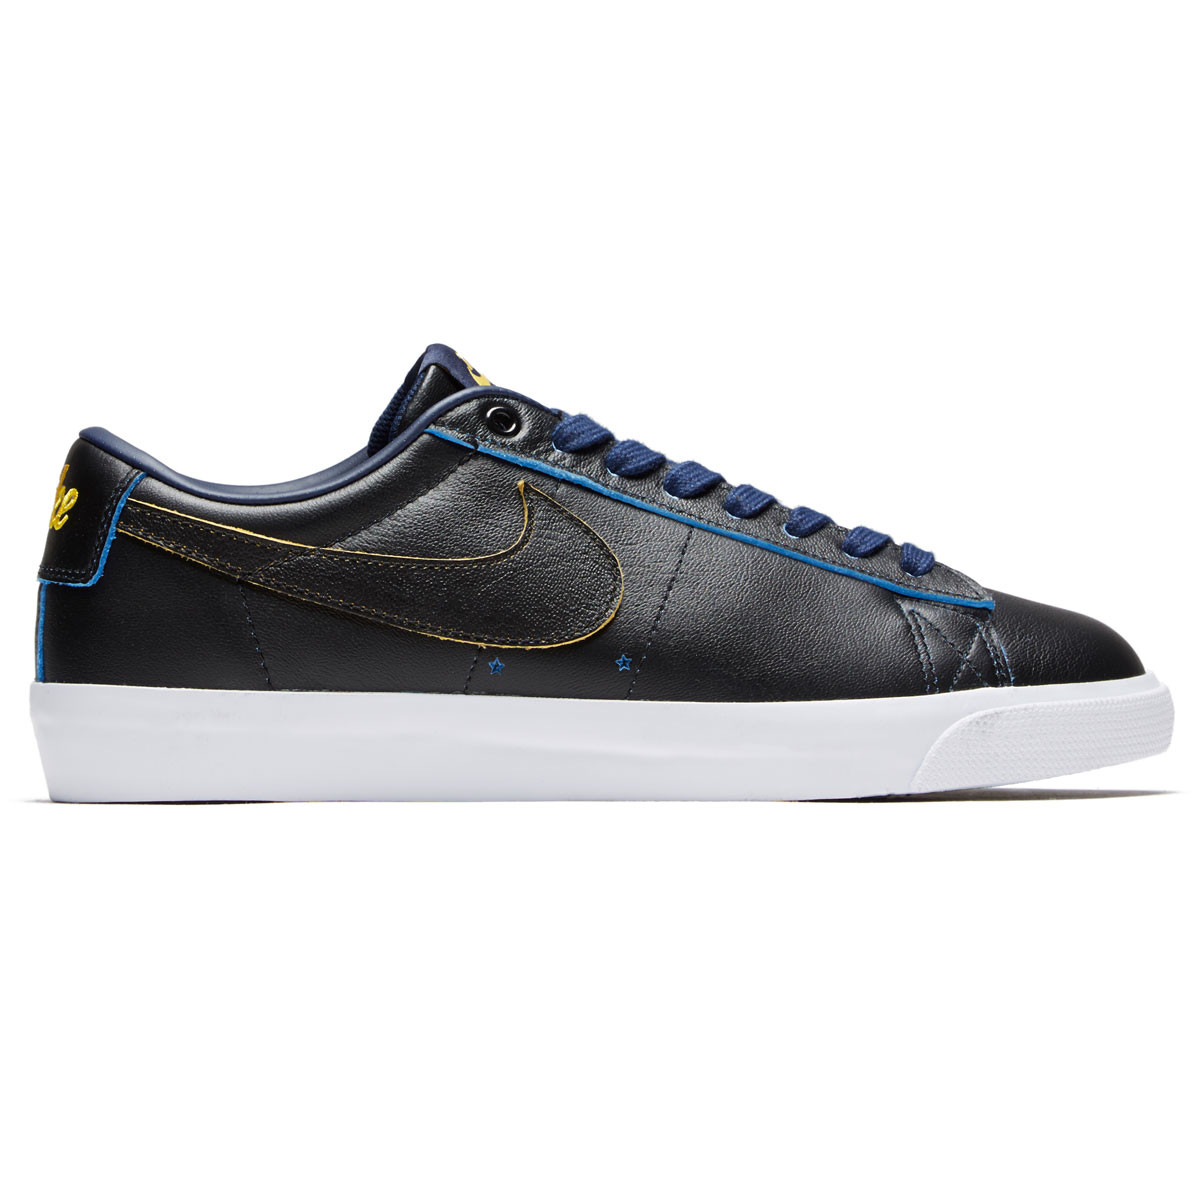 Nike SB x NBA Blazer Low GT Shoes